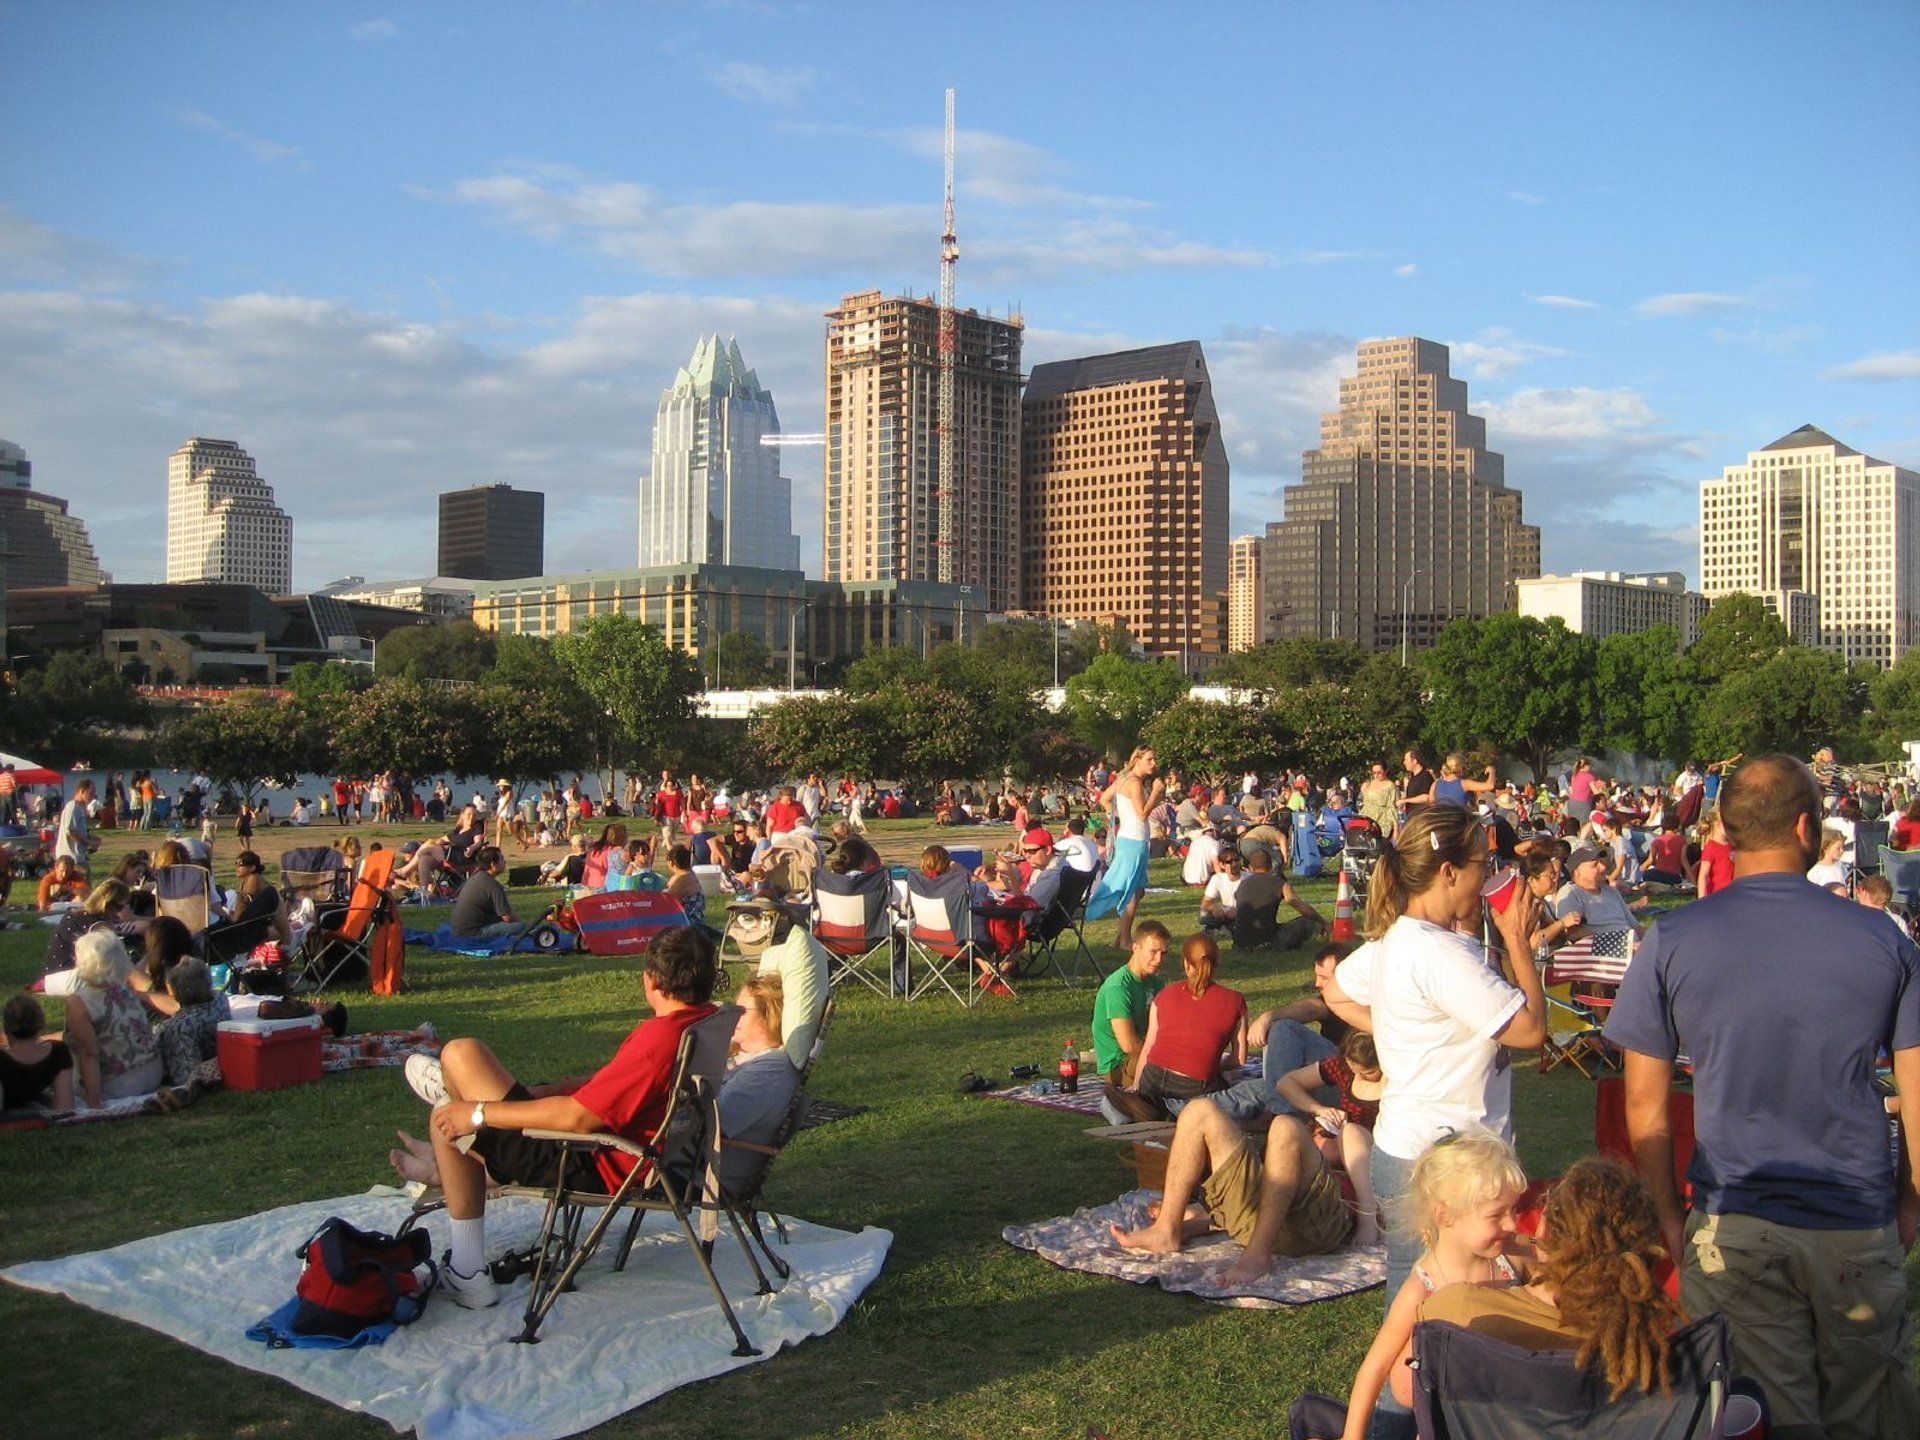 Auditorium Shores, July 4th 2020